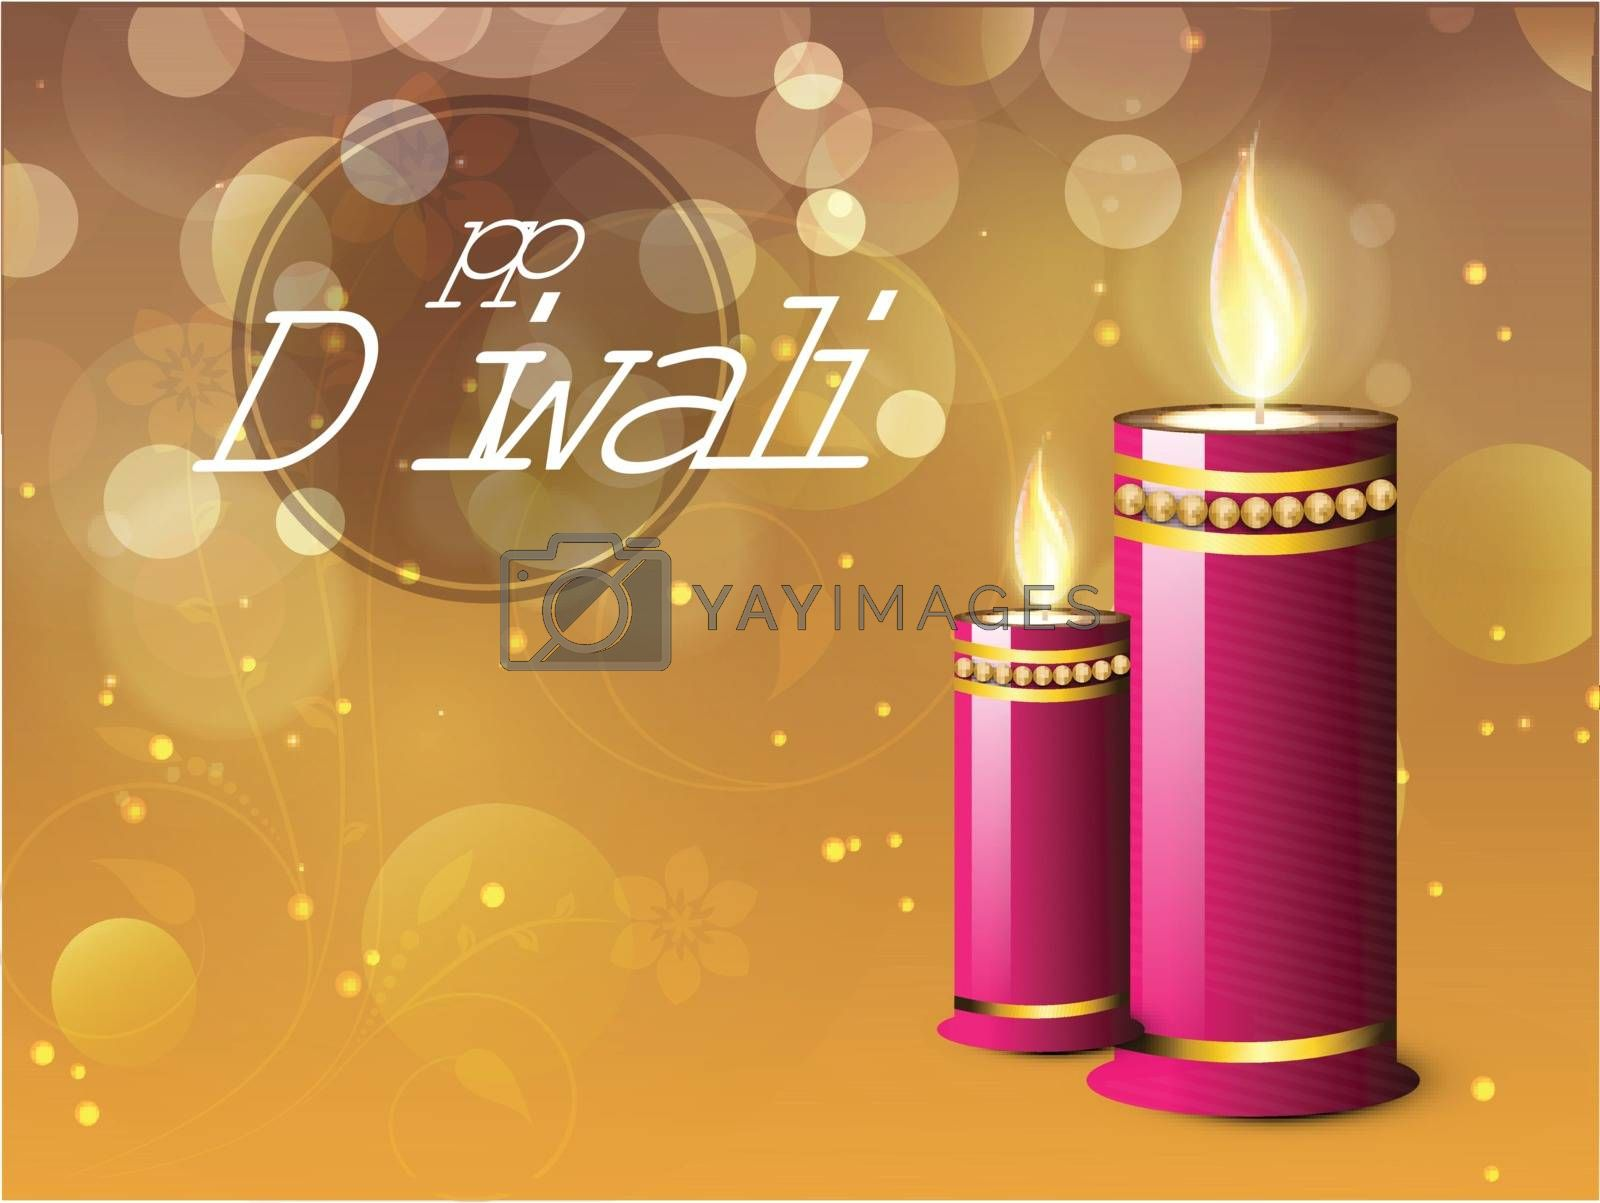 Creative glossy candle on glowing floral background, Elegant Greeting Card design for Indian Festival of Lights, Happy Diwali celebration.